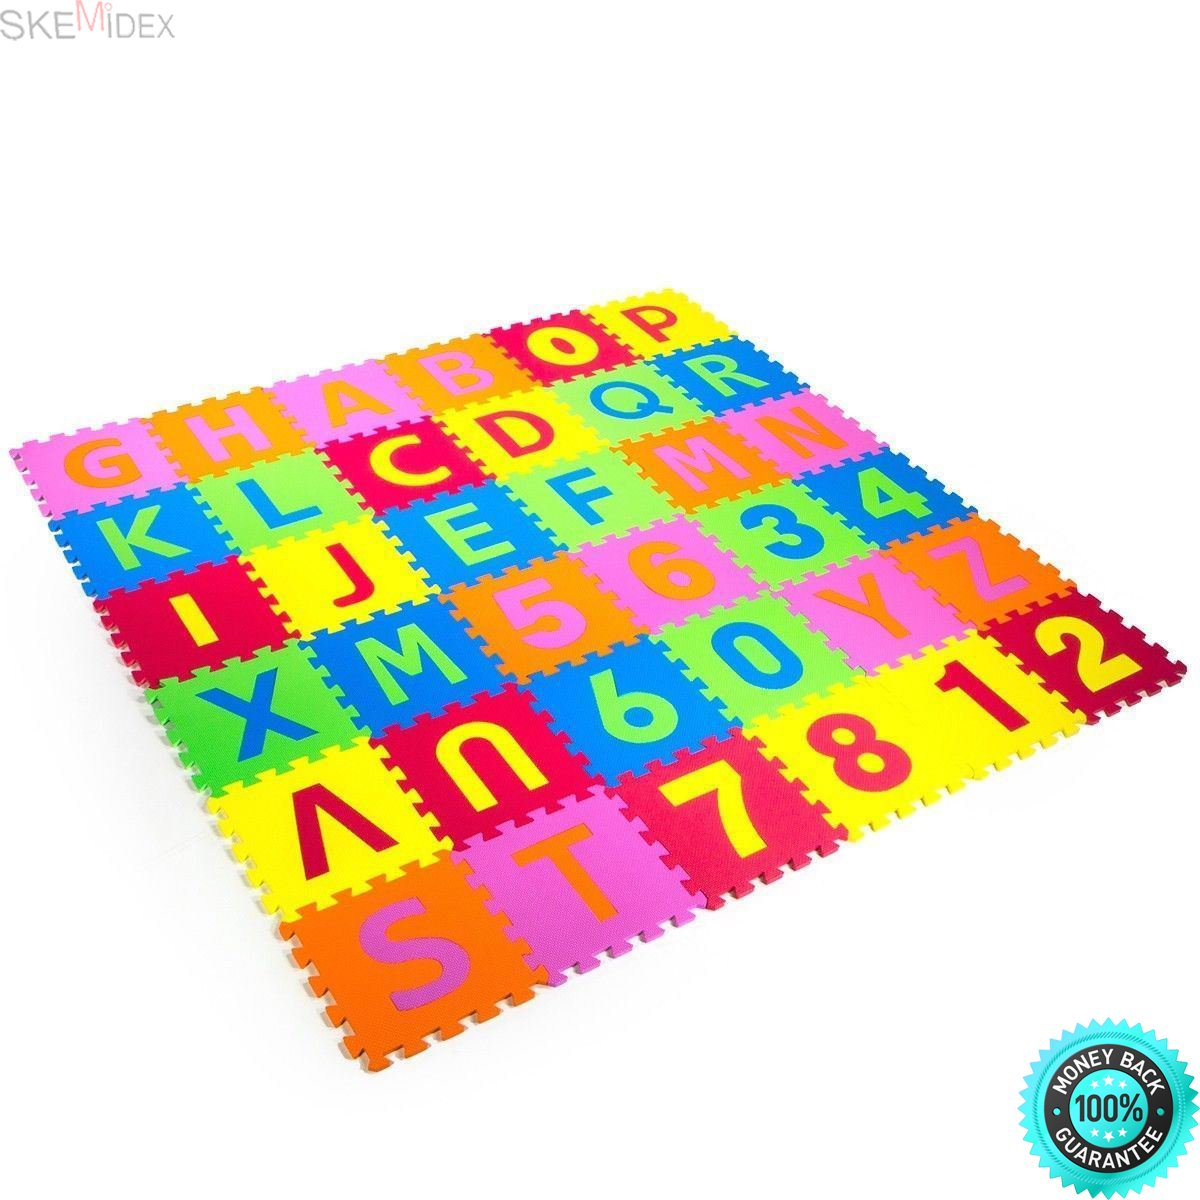 SKEMiDEX---New Puzzle Mat 36 blocks Learning ABC Alphabet Study Kids Letters Floor Play Toy And baby play mat walmart baby play mat amazon baby foam floor mat play mat foam best baby play mat baby